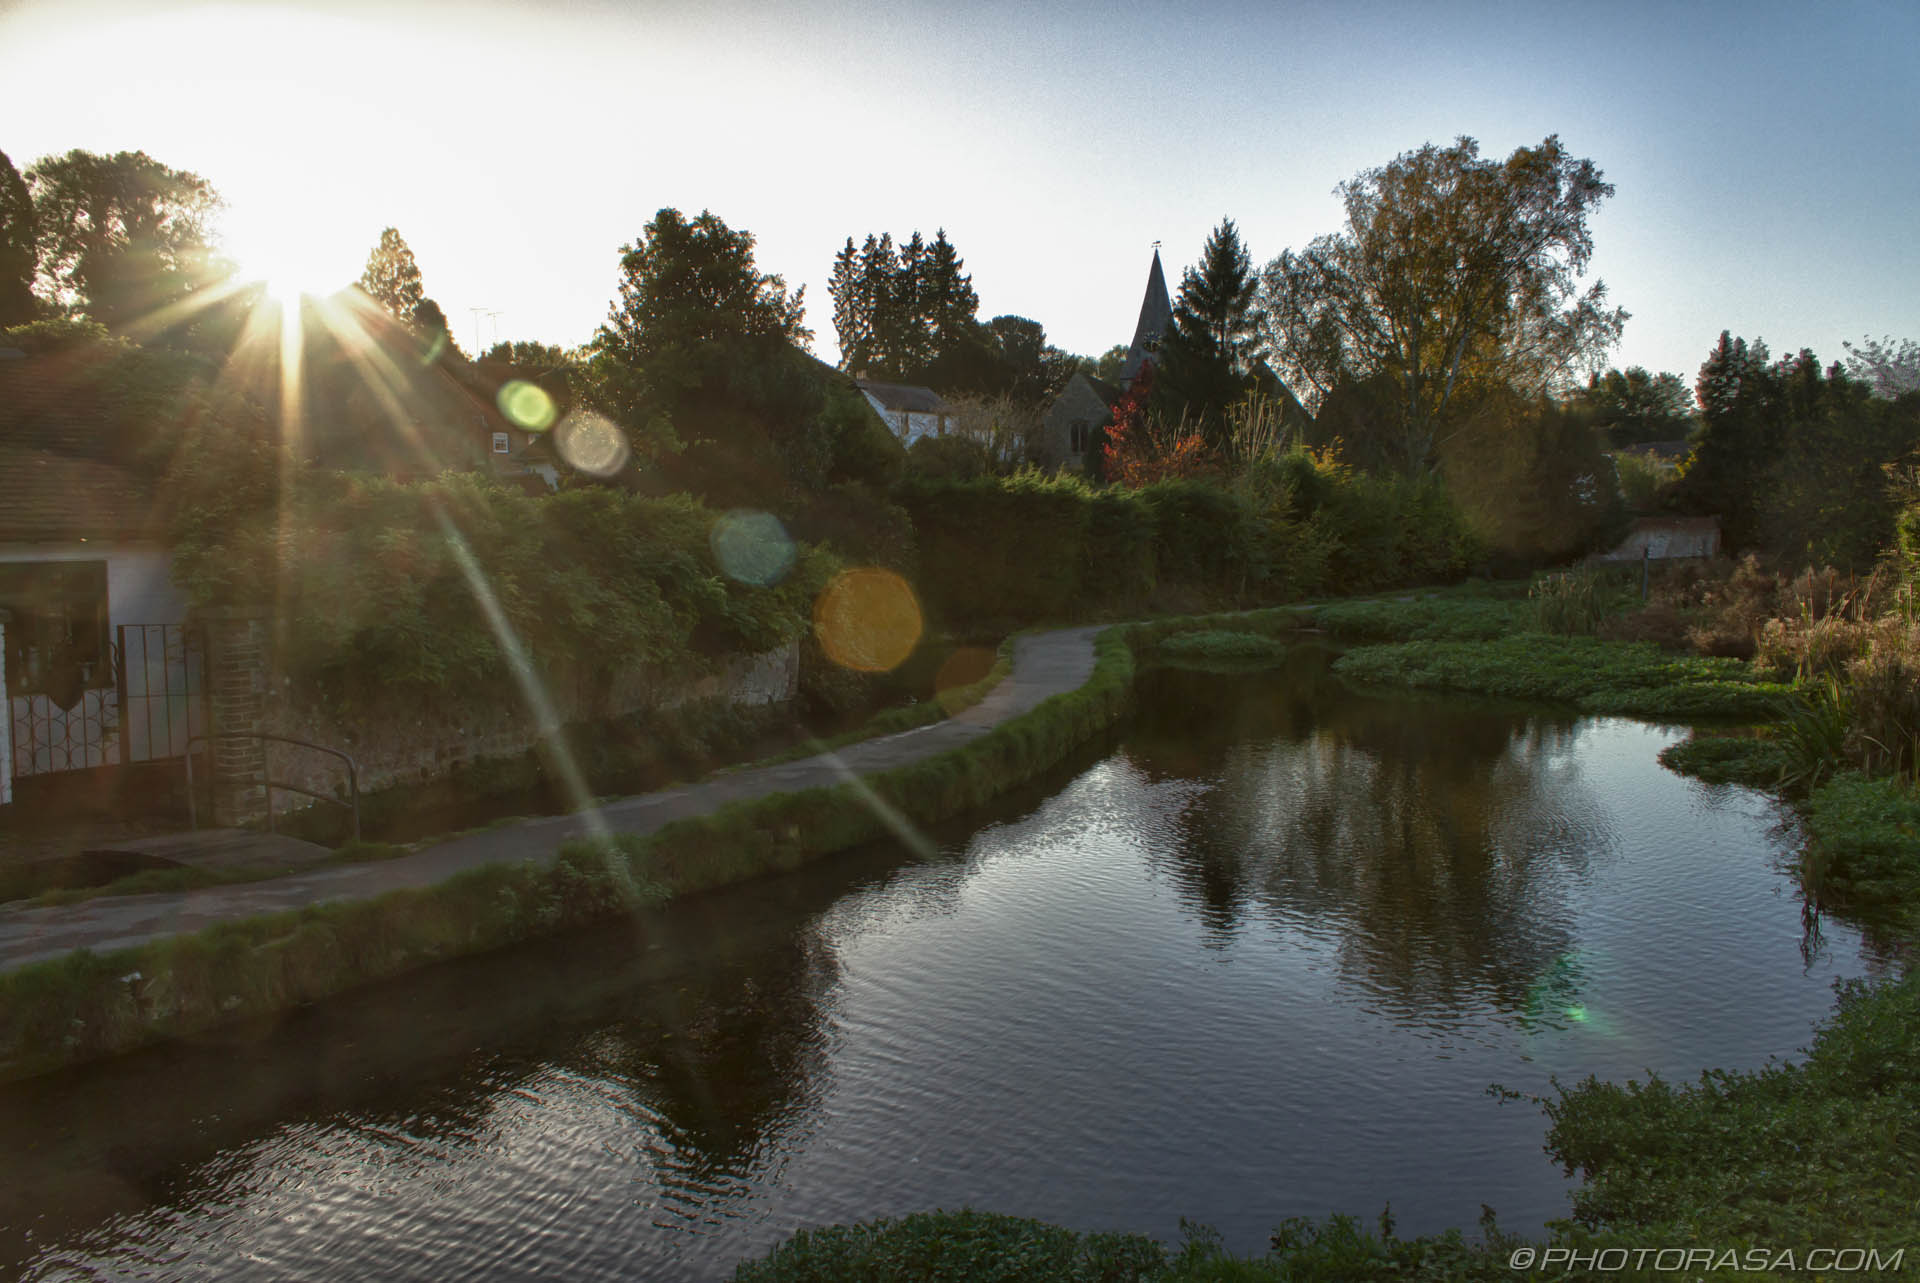 http://photorasa.com/loose-village/loose-stream-and-sunrays/